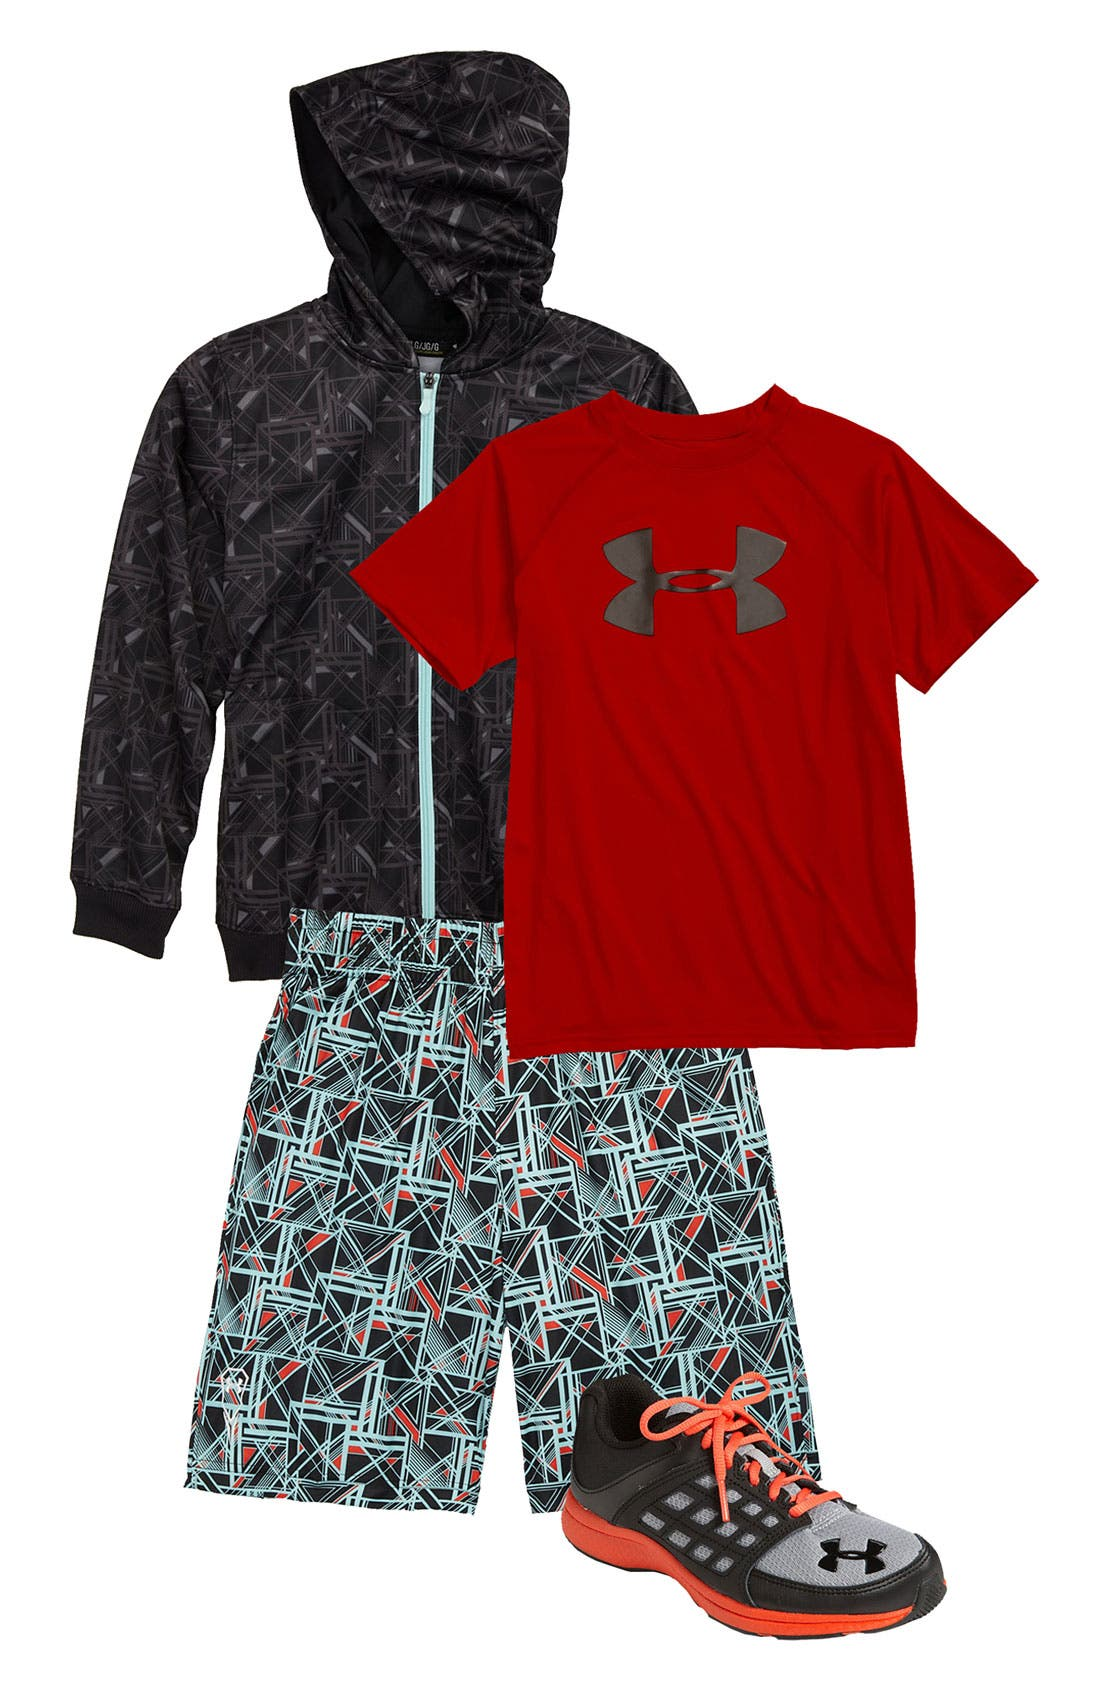 Alternate Image 1 Selected - Under Armour T-Shirt, Shorts & Hoodie (Big Boys)